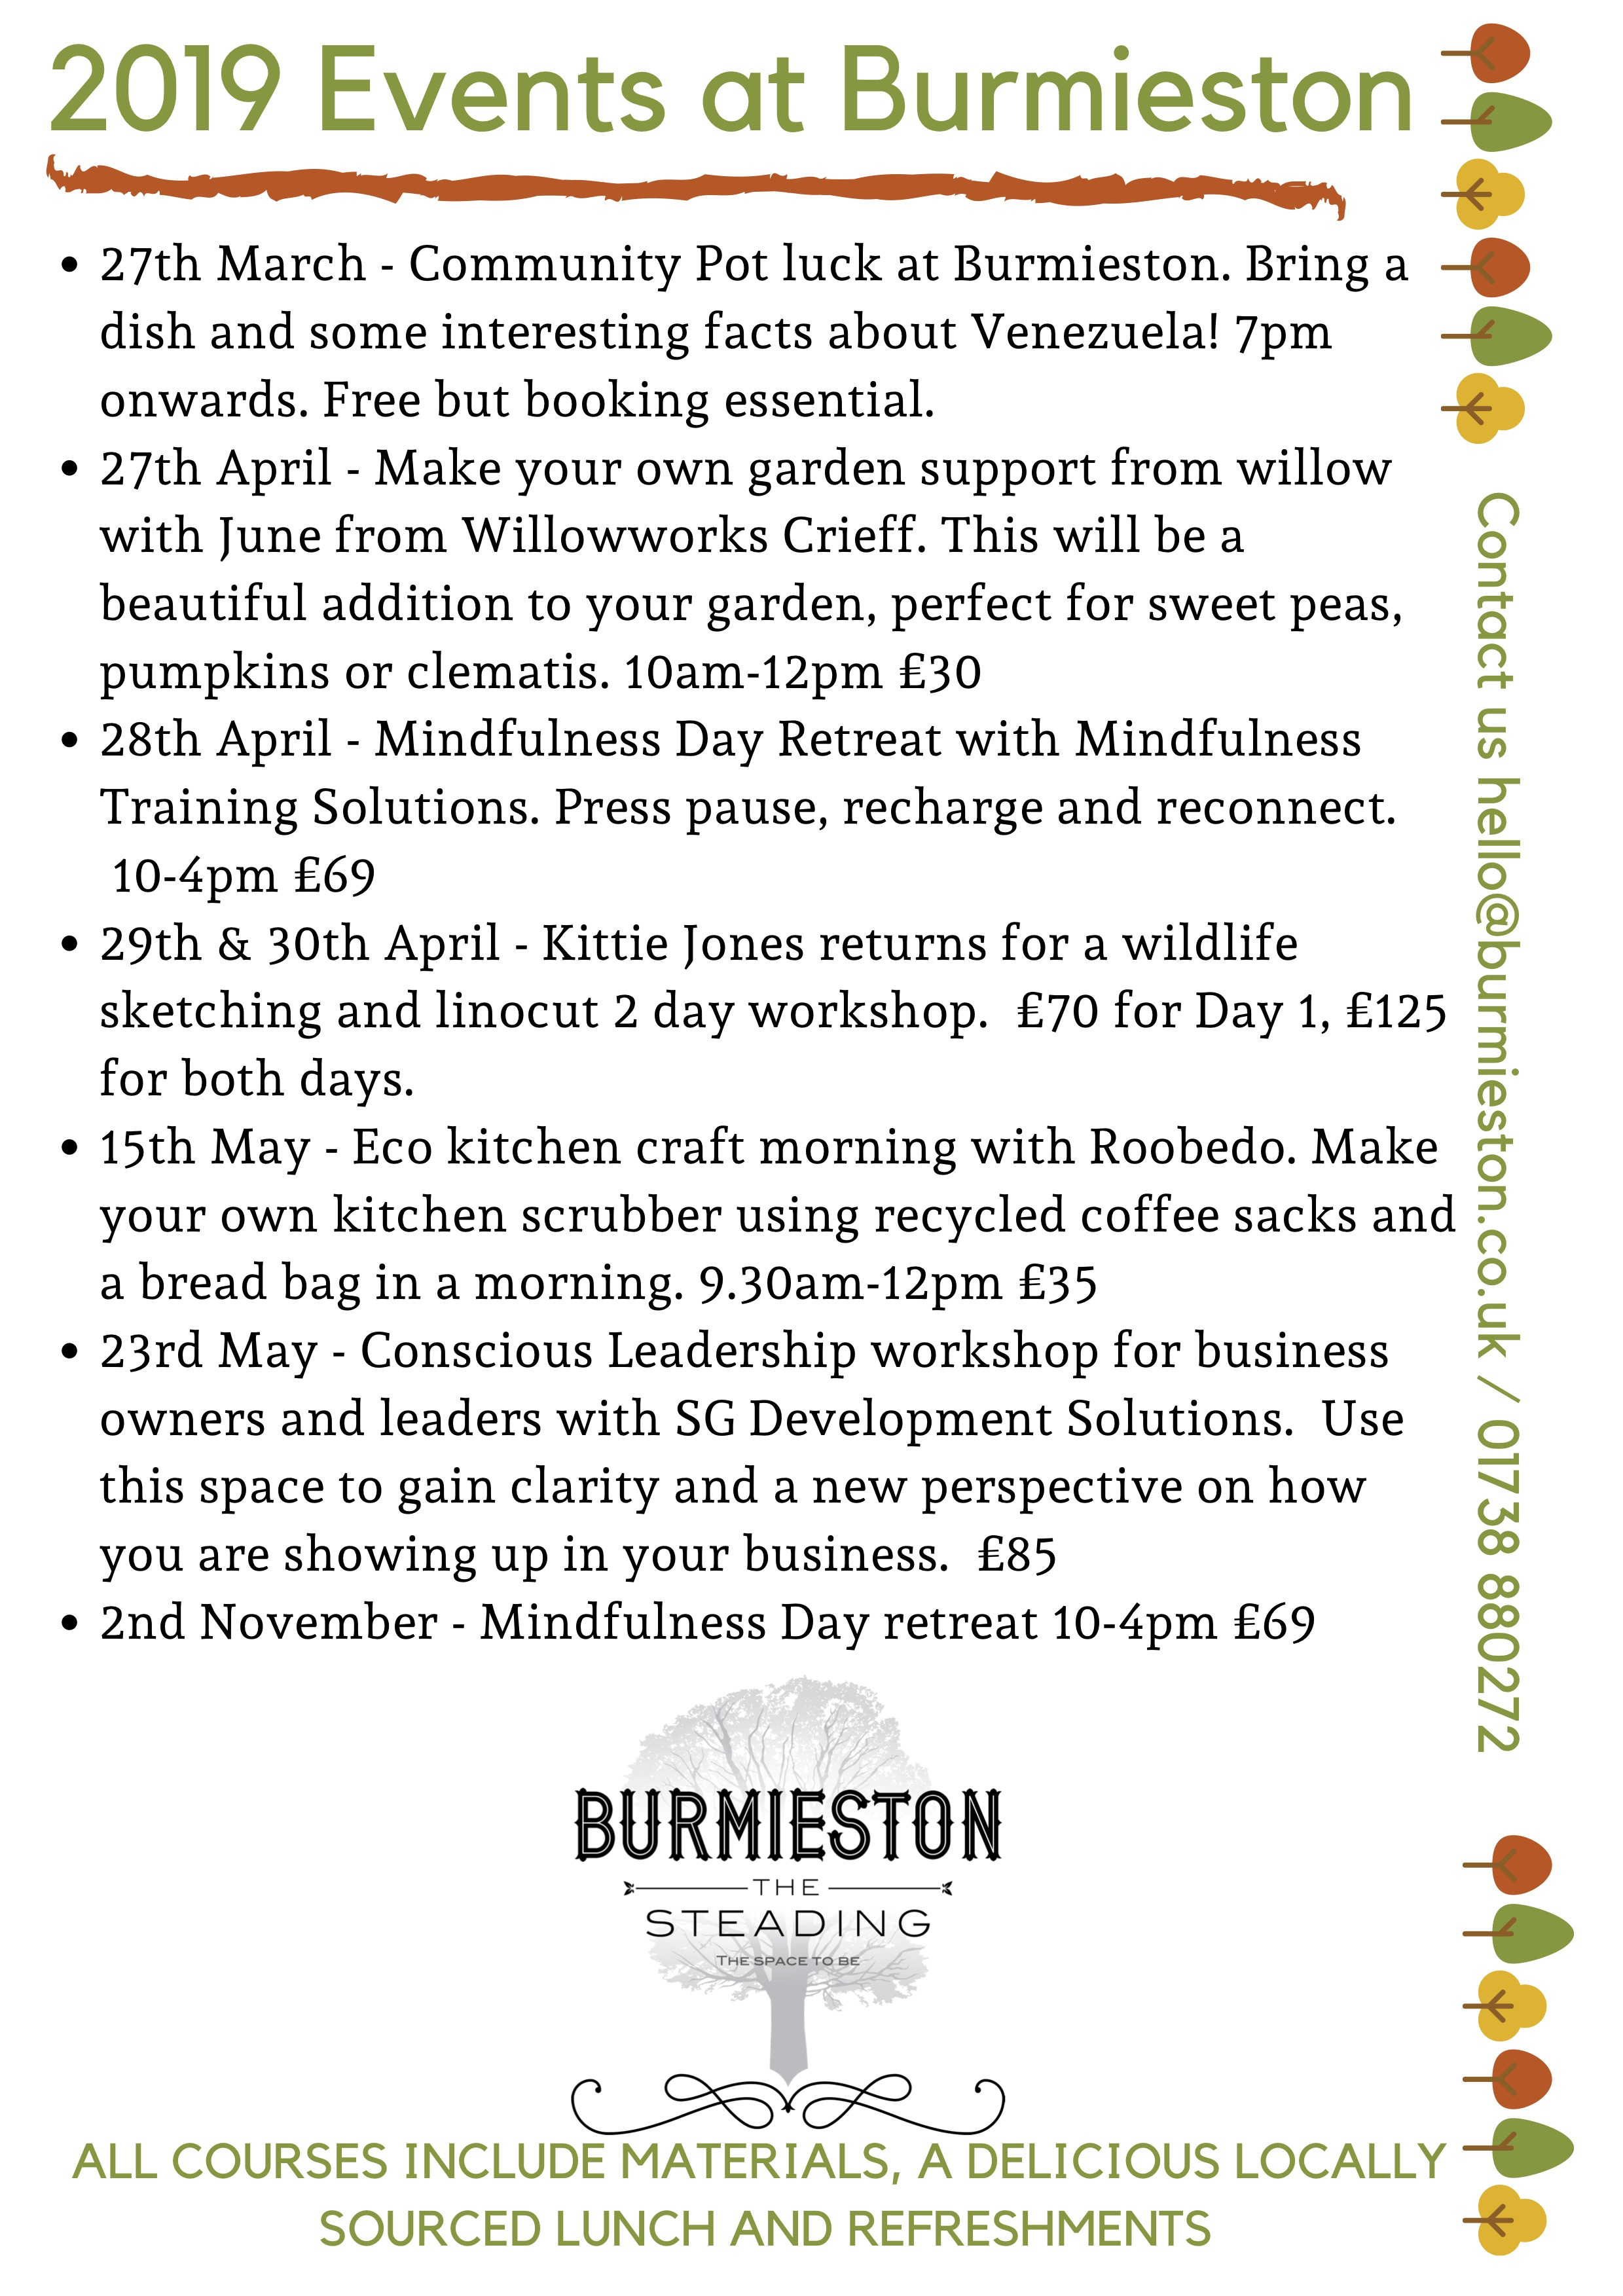 2019 Events at Burmieston